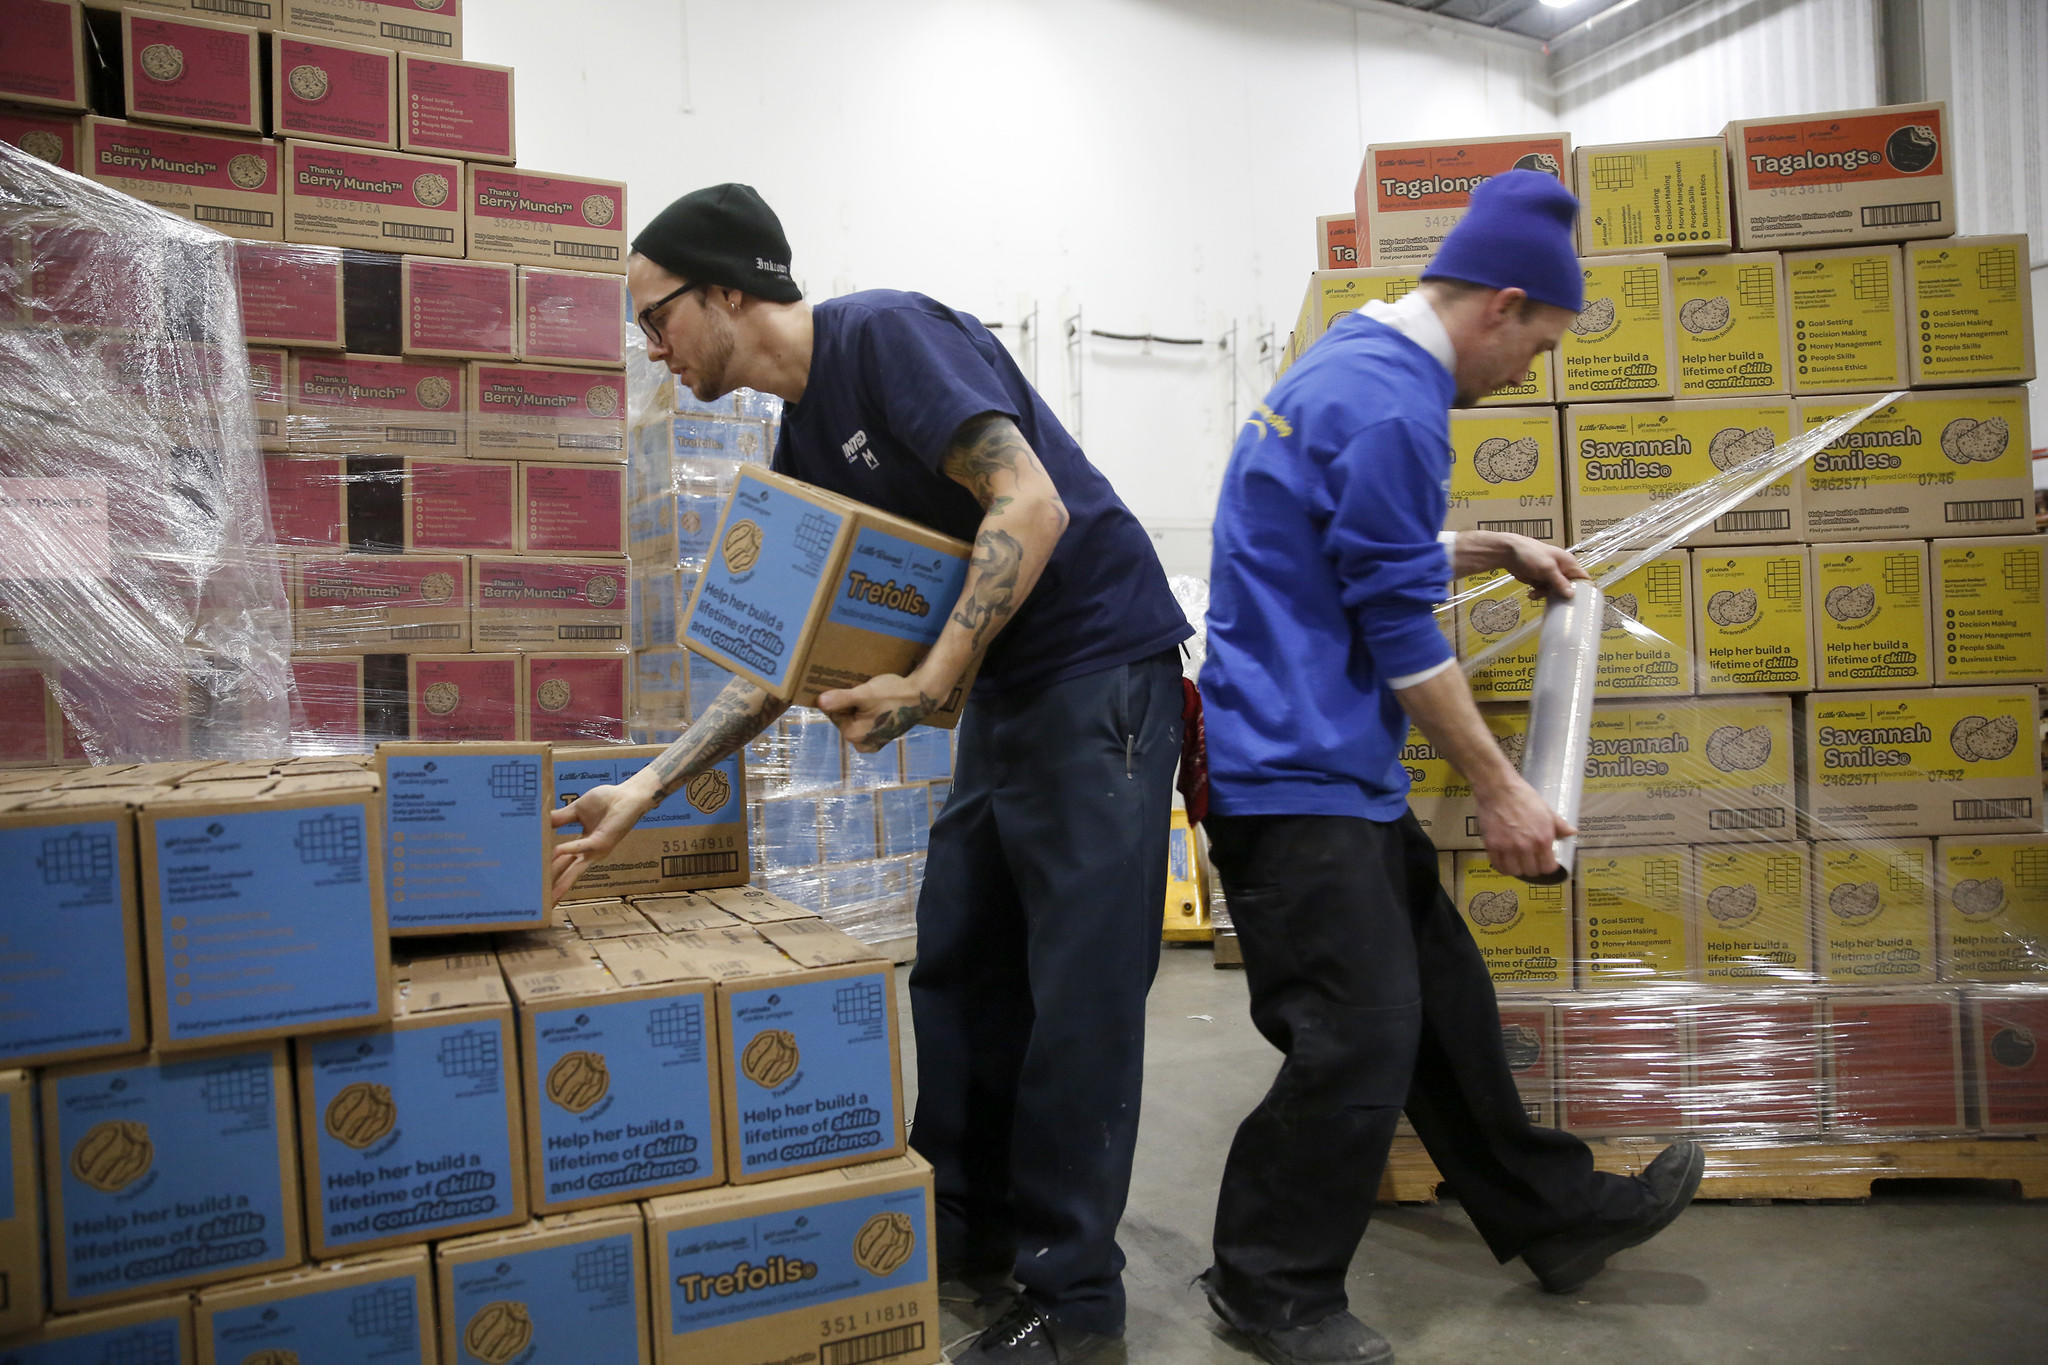 Workers fill pallets with cases of Girl Scout cookies to be distributed throughout the Chicagoland area. Each case holds between 12-16 boxes.